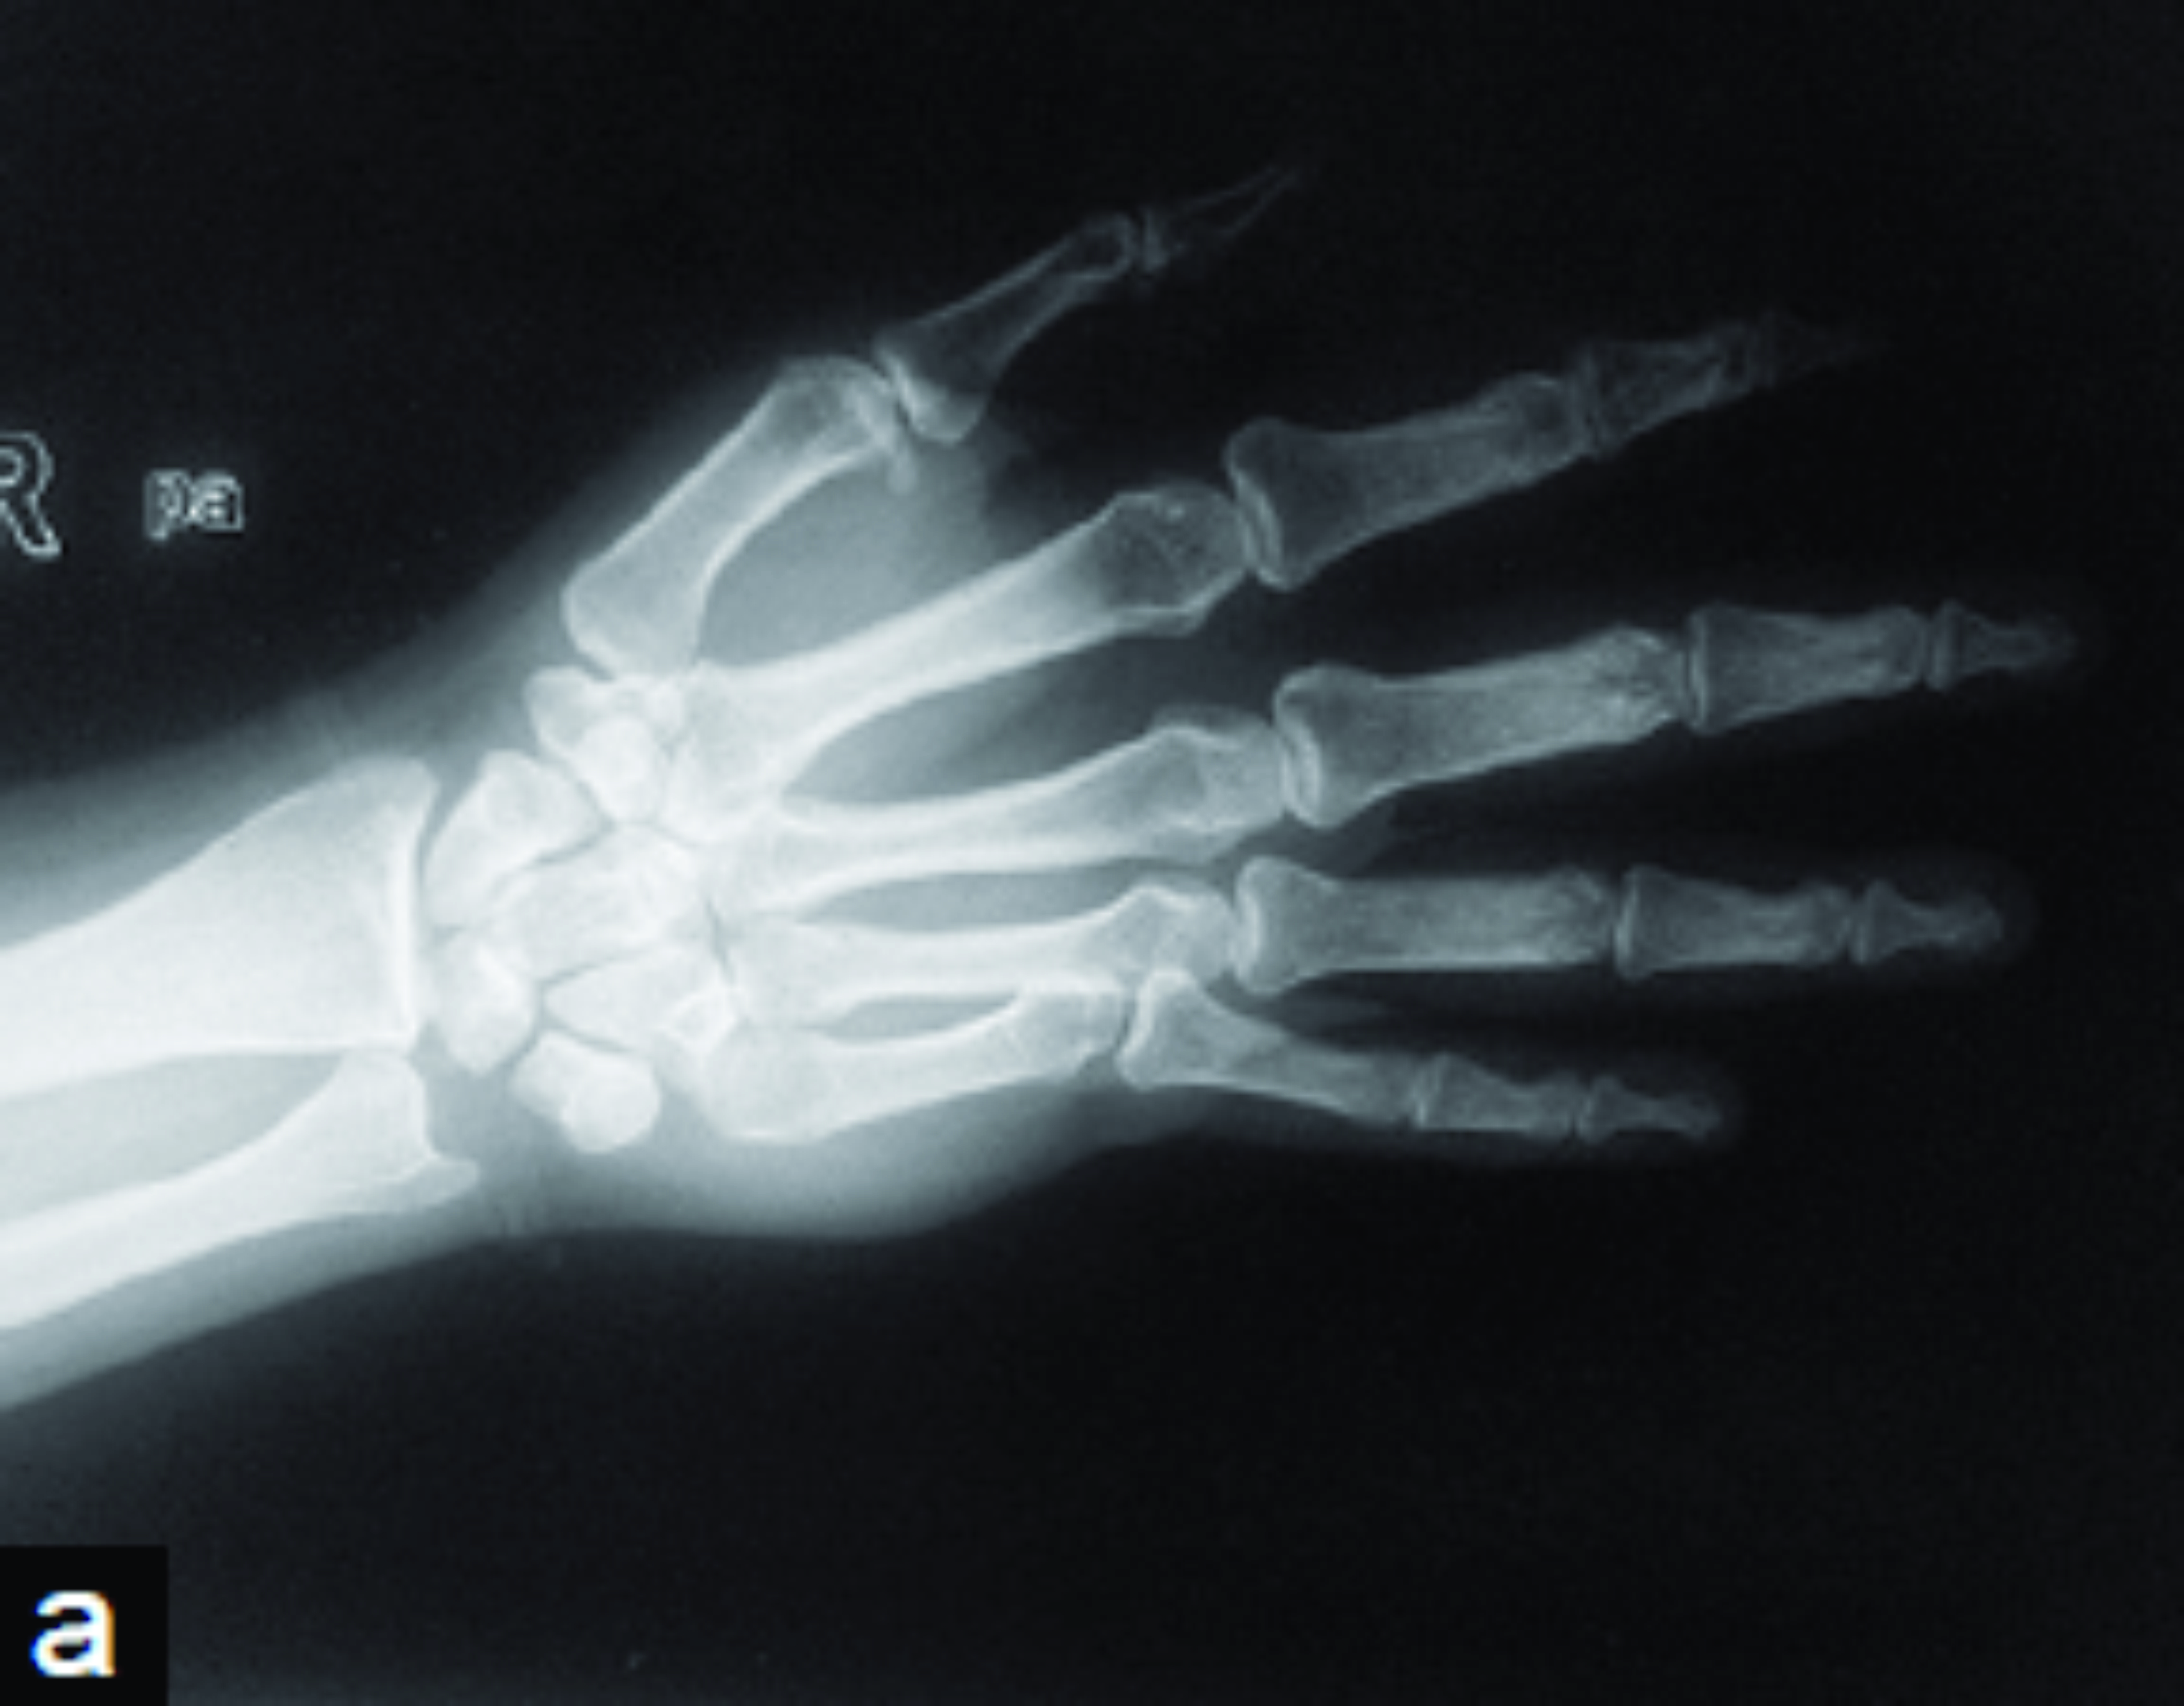 An Isolated Pure Dislocation Of Fifth Carpometacarpal